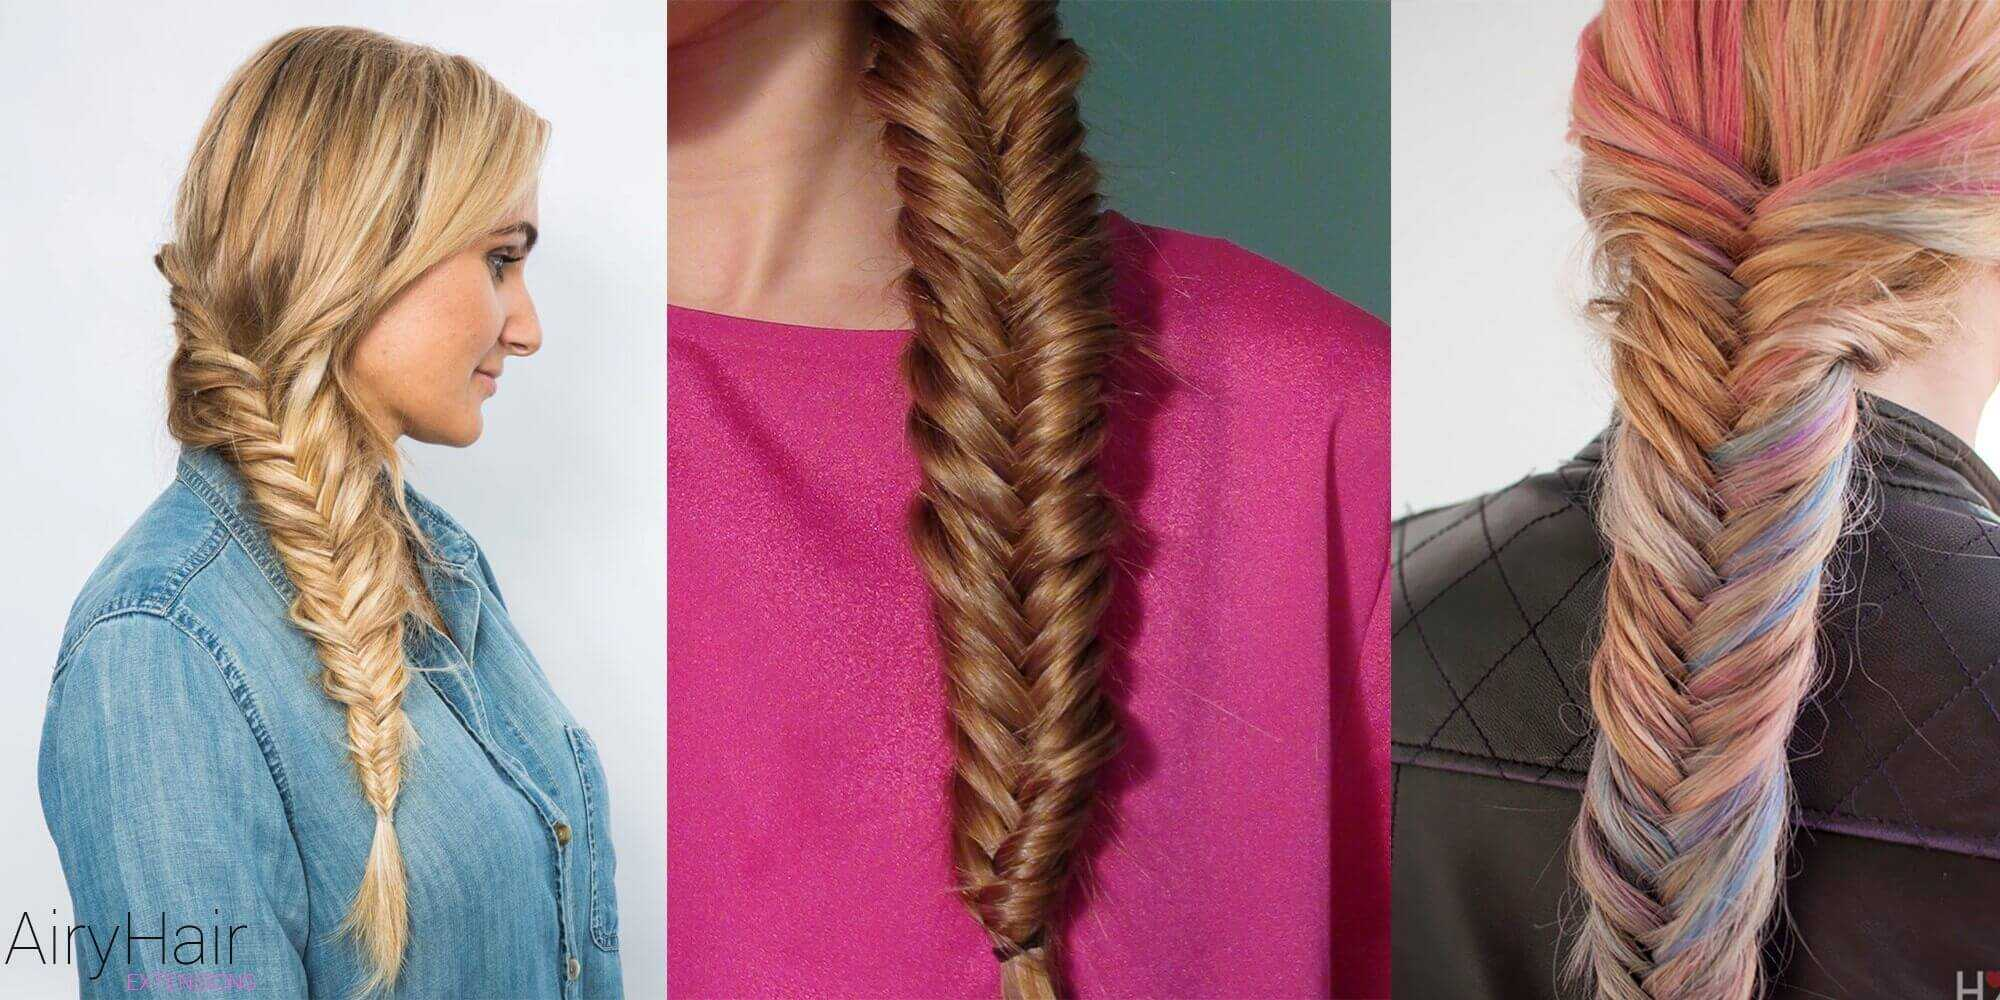 Hairstyles 2019 Braids: 7+ Trendy Braid Hairstyles For 2018 And 2019